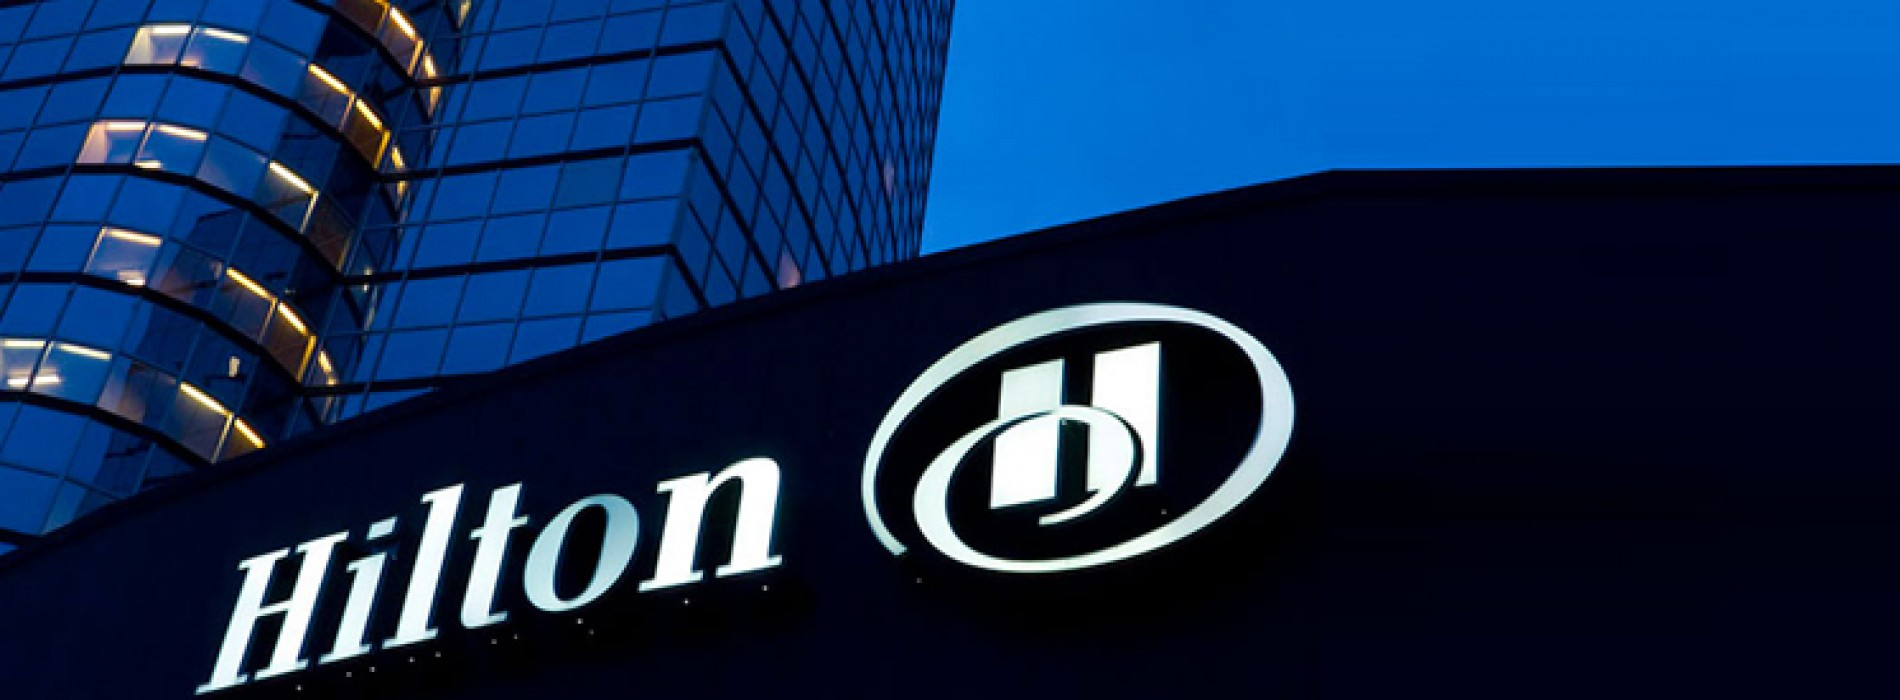 hilton corporation Hilton garden inn offers worry-free reservations and affordable hotel rooms.